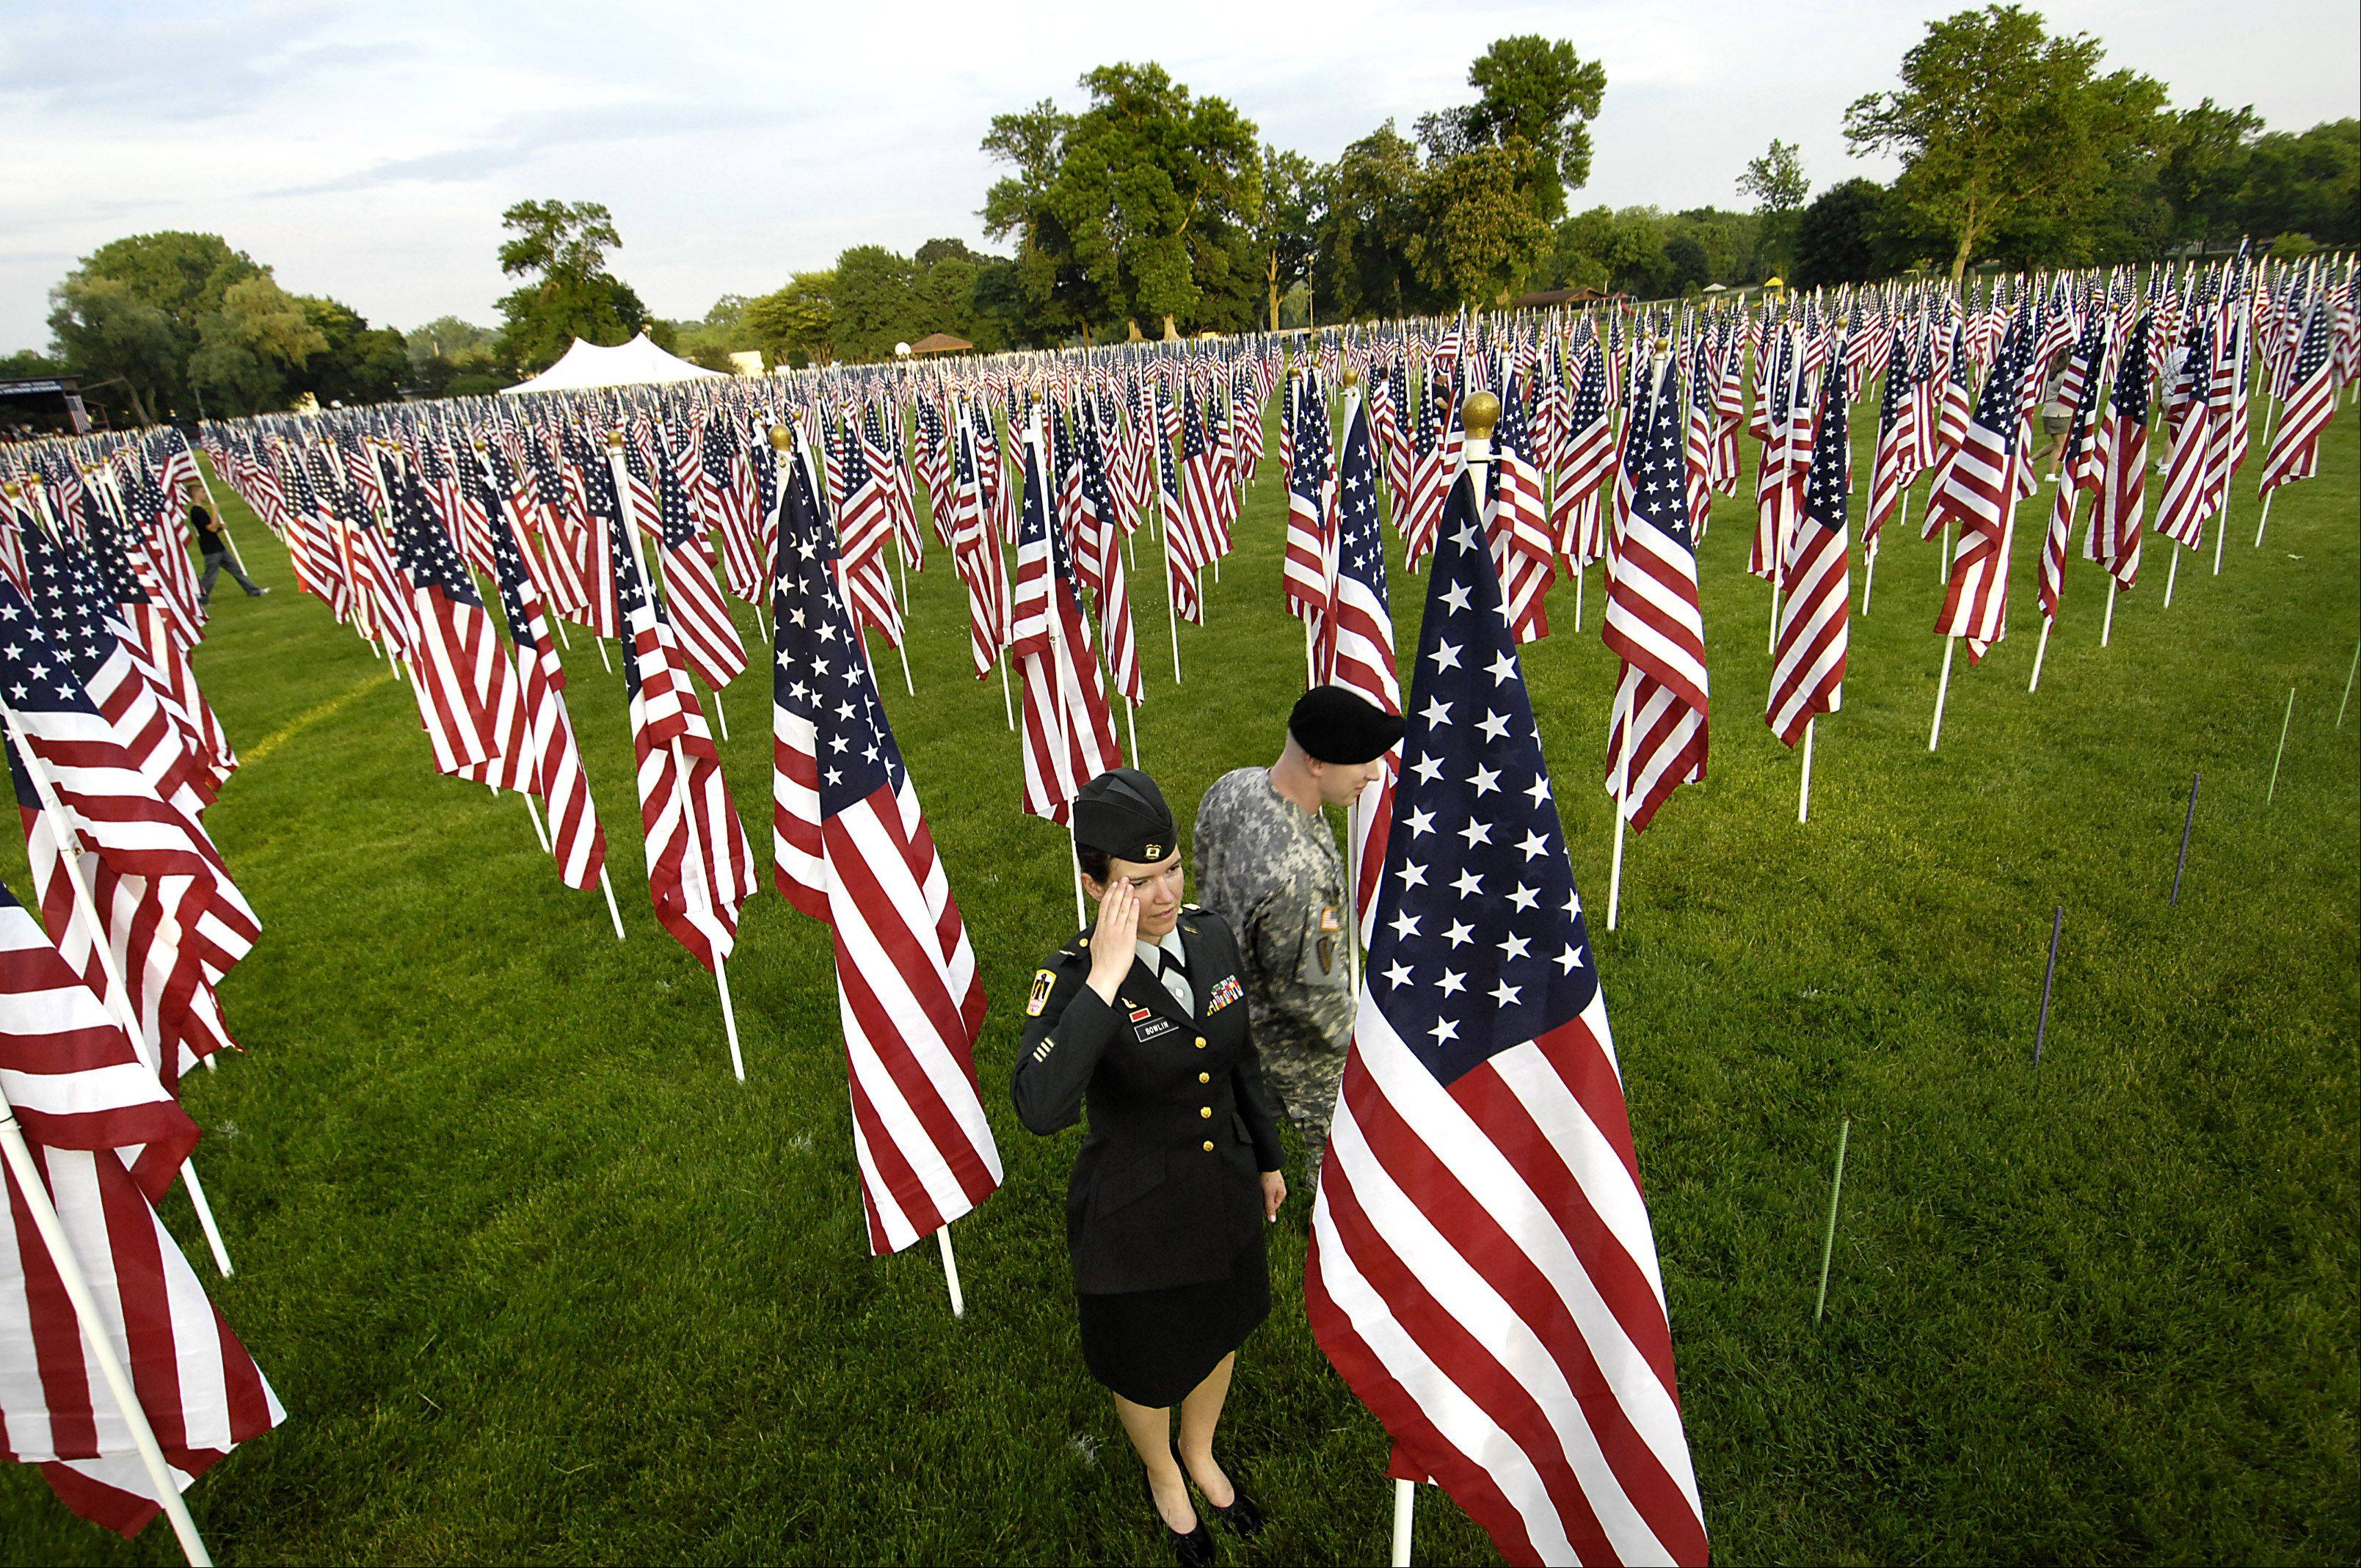 A Healing Field event will take place today through Sunday, Sept. 11, in Carpenter Park, Carpentersville, to honor those who lost their lives in the Sept. 11, 2001 attacks.